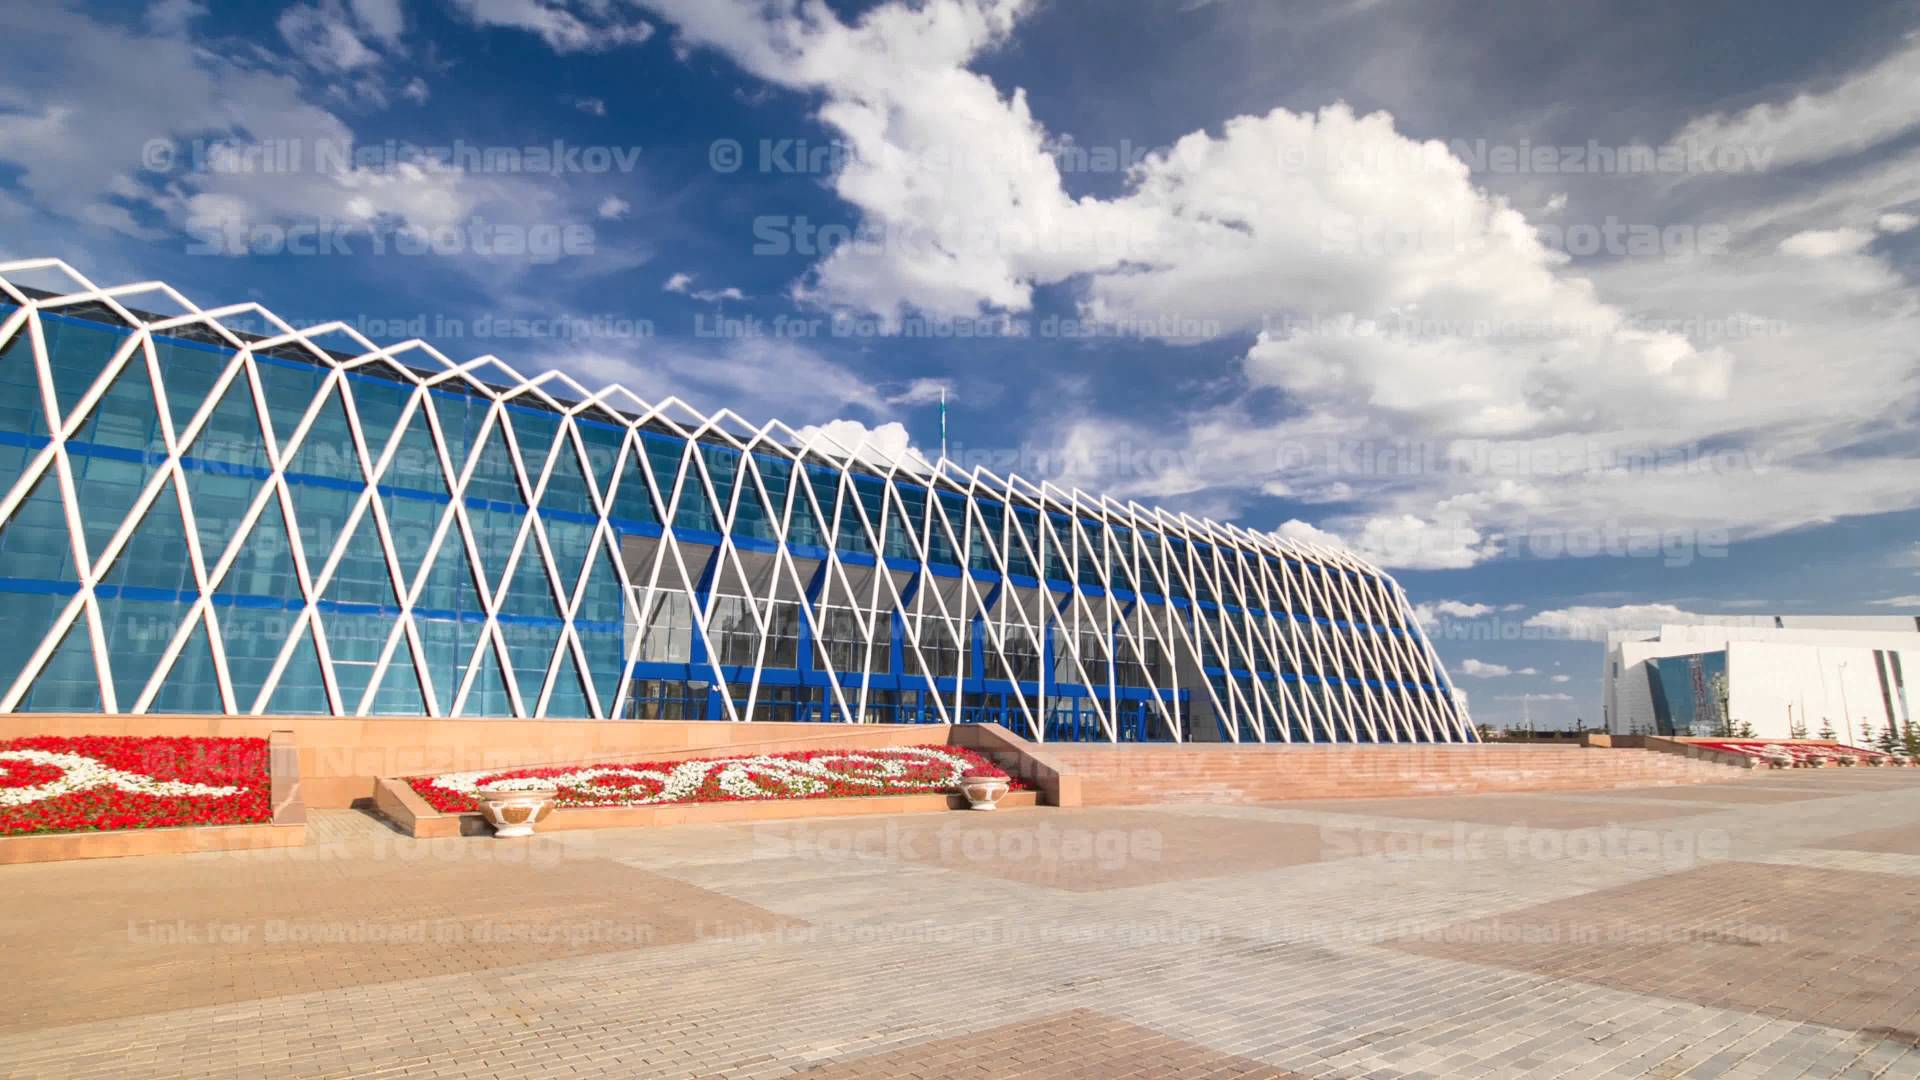 Palace of Independence Astana, Central Asia, Kazakhstan, Astana, Palace of Independence timelapse ...